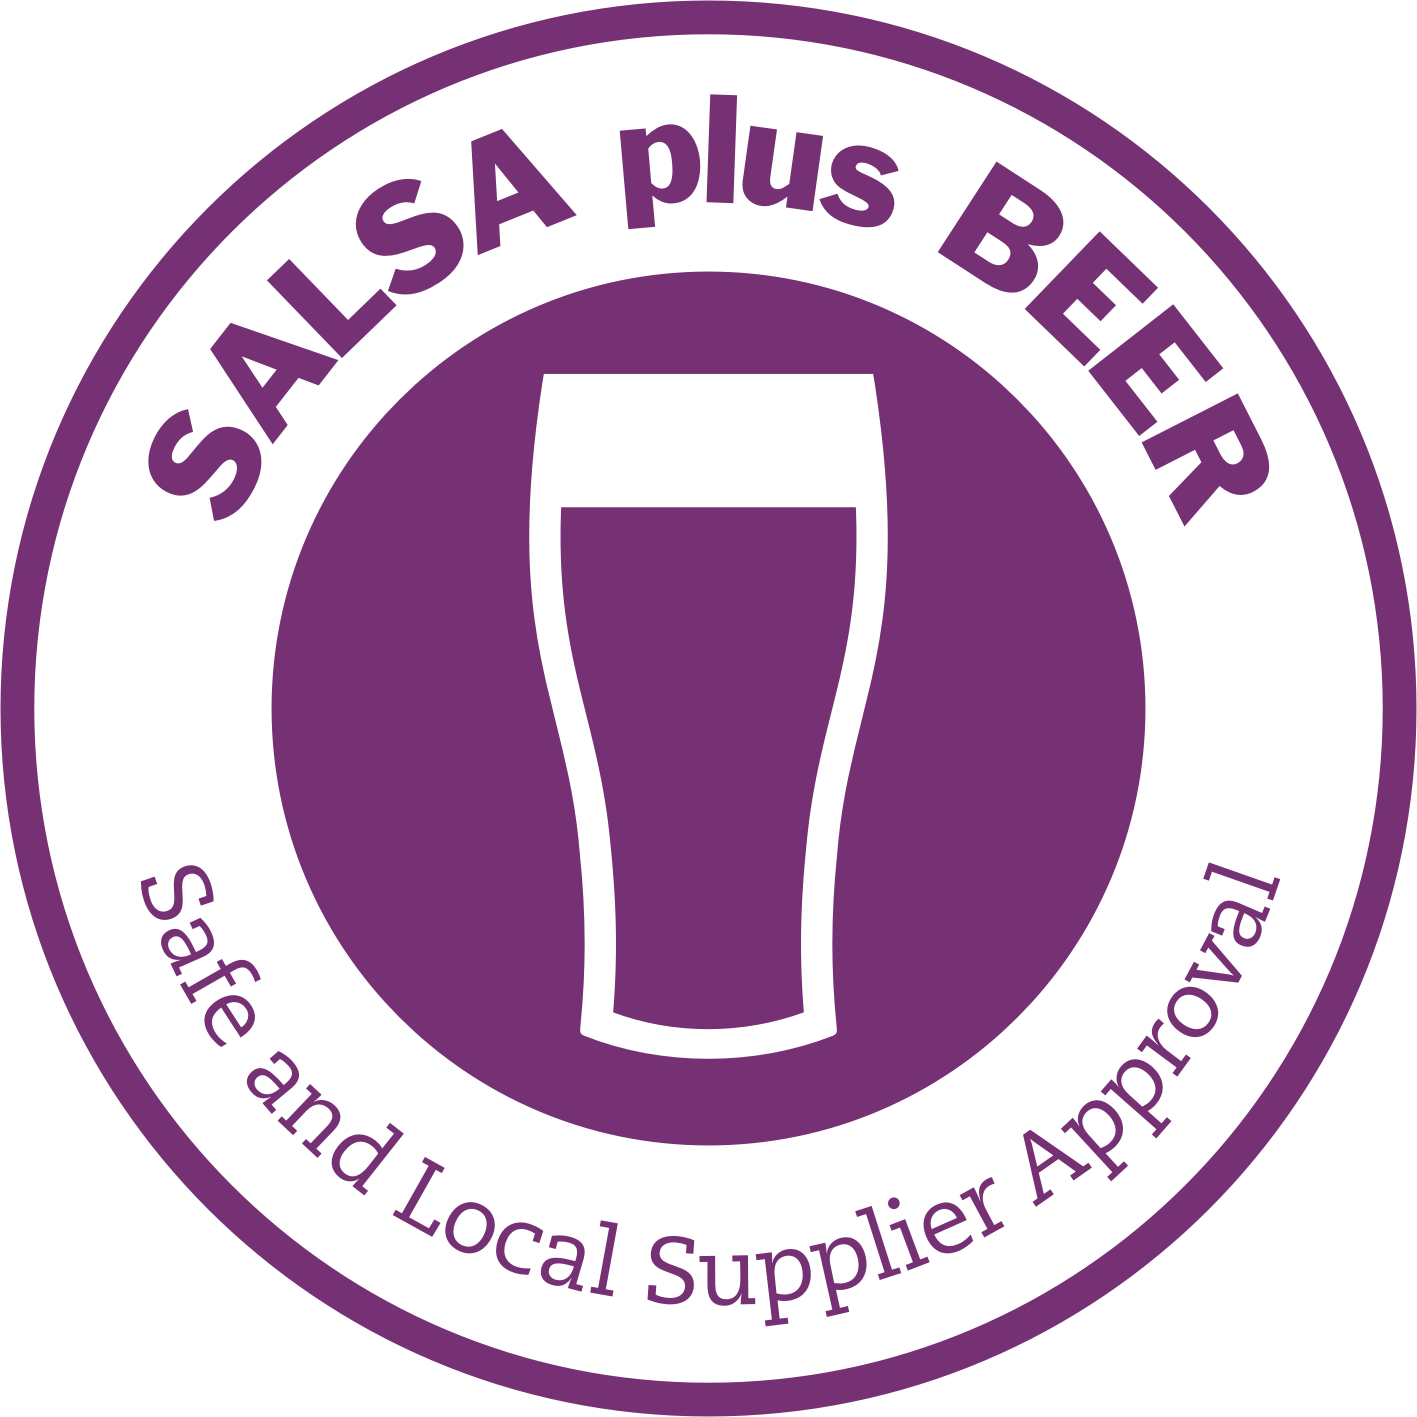 SALSA Accreditation - Keltek have set themselves apart by obtaining the SALSA-plus-beer quality accreditation.